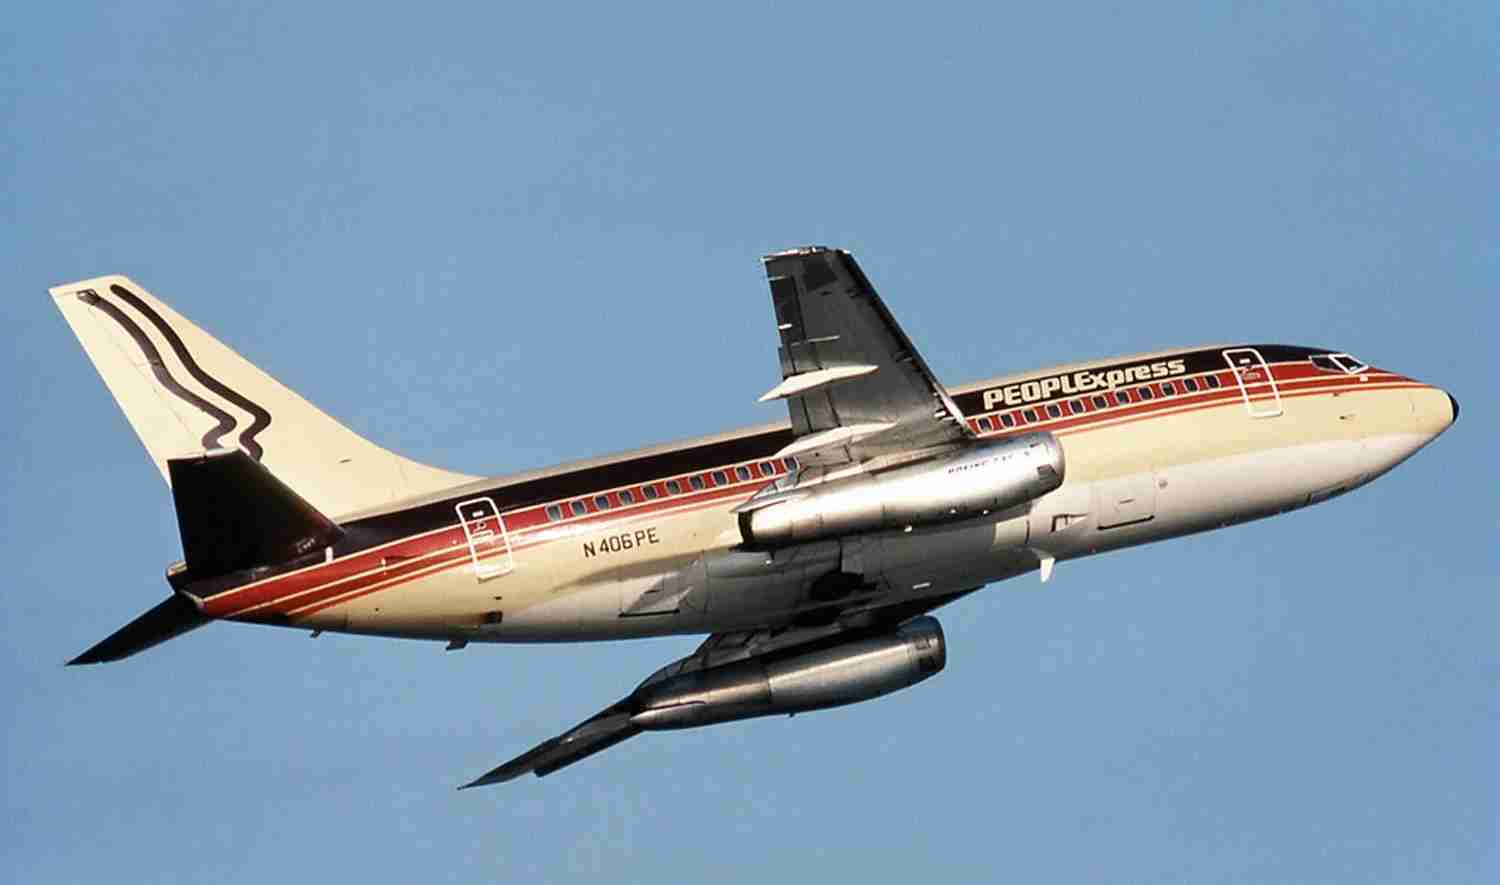 One of PEOPLExpress' coffee-colored 737-100s.